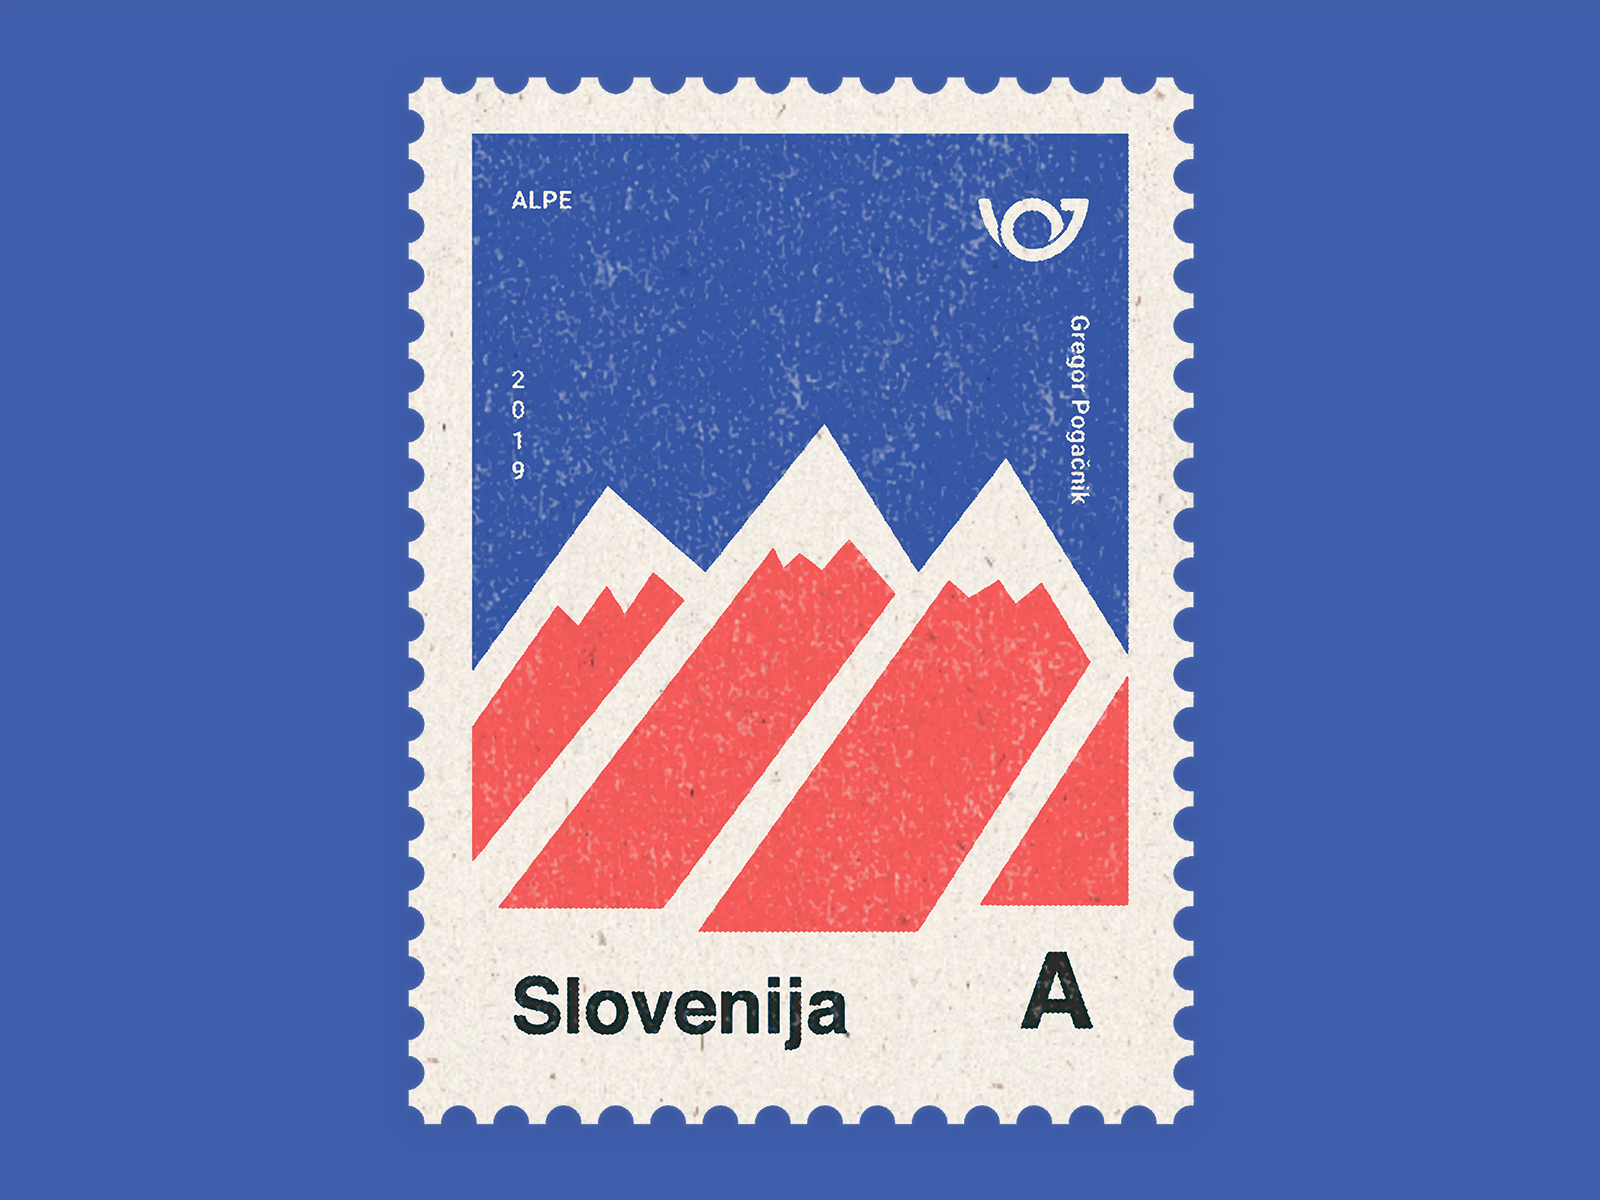 Slovenia - Country of 4 landscapes stamp collection: Alps